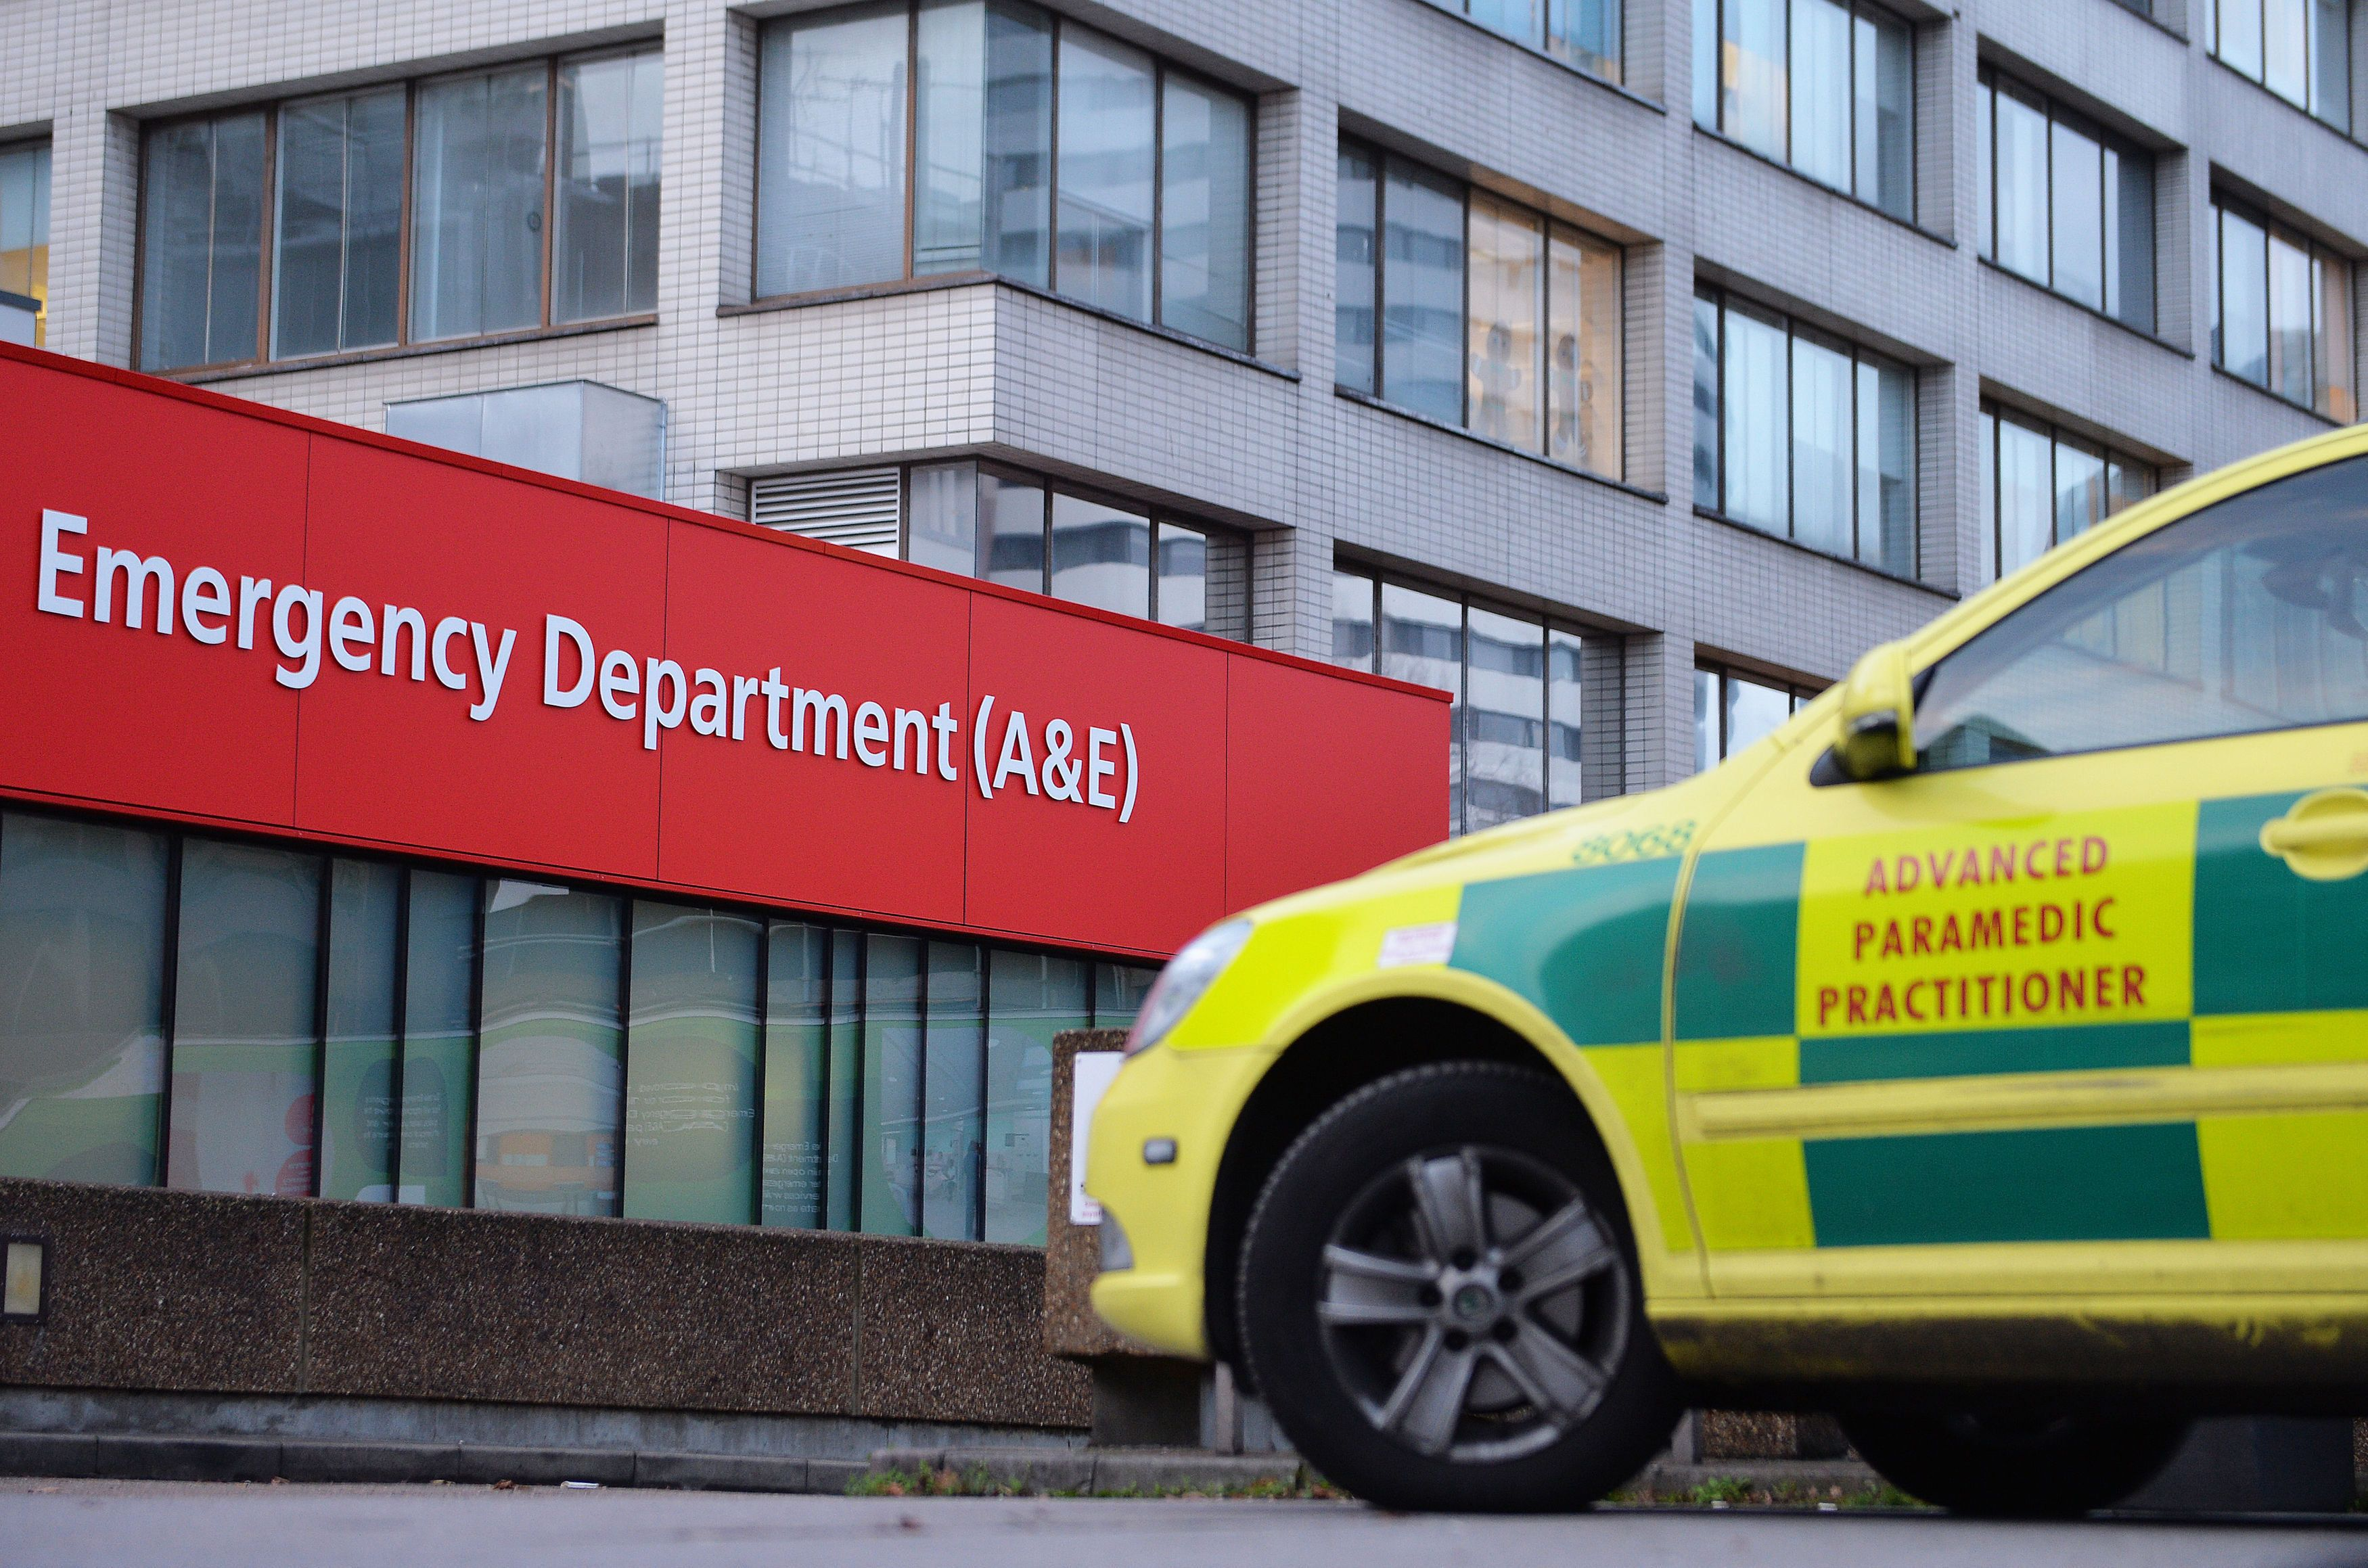 Sarah says 'A&E is becoming a refuge, rather than somewhere that treats acute